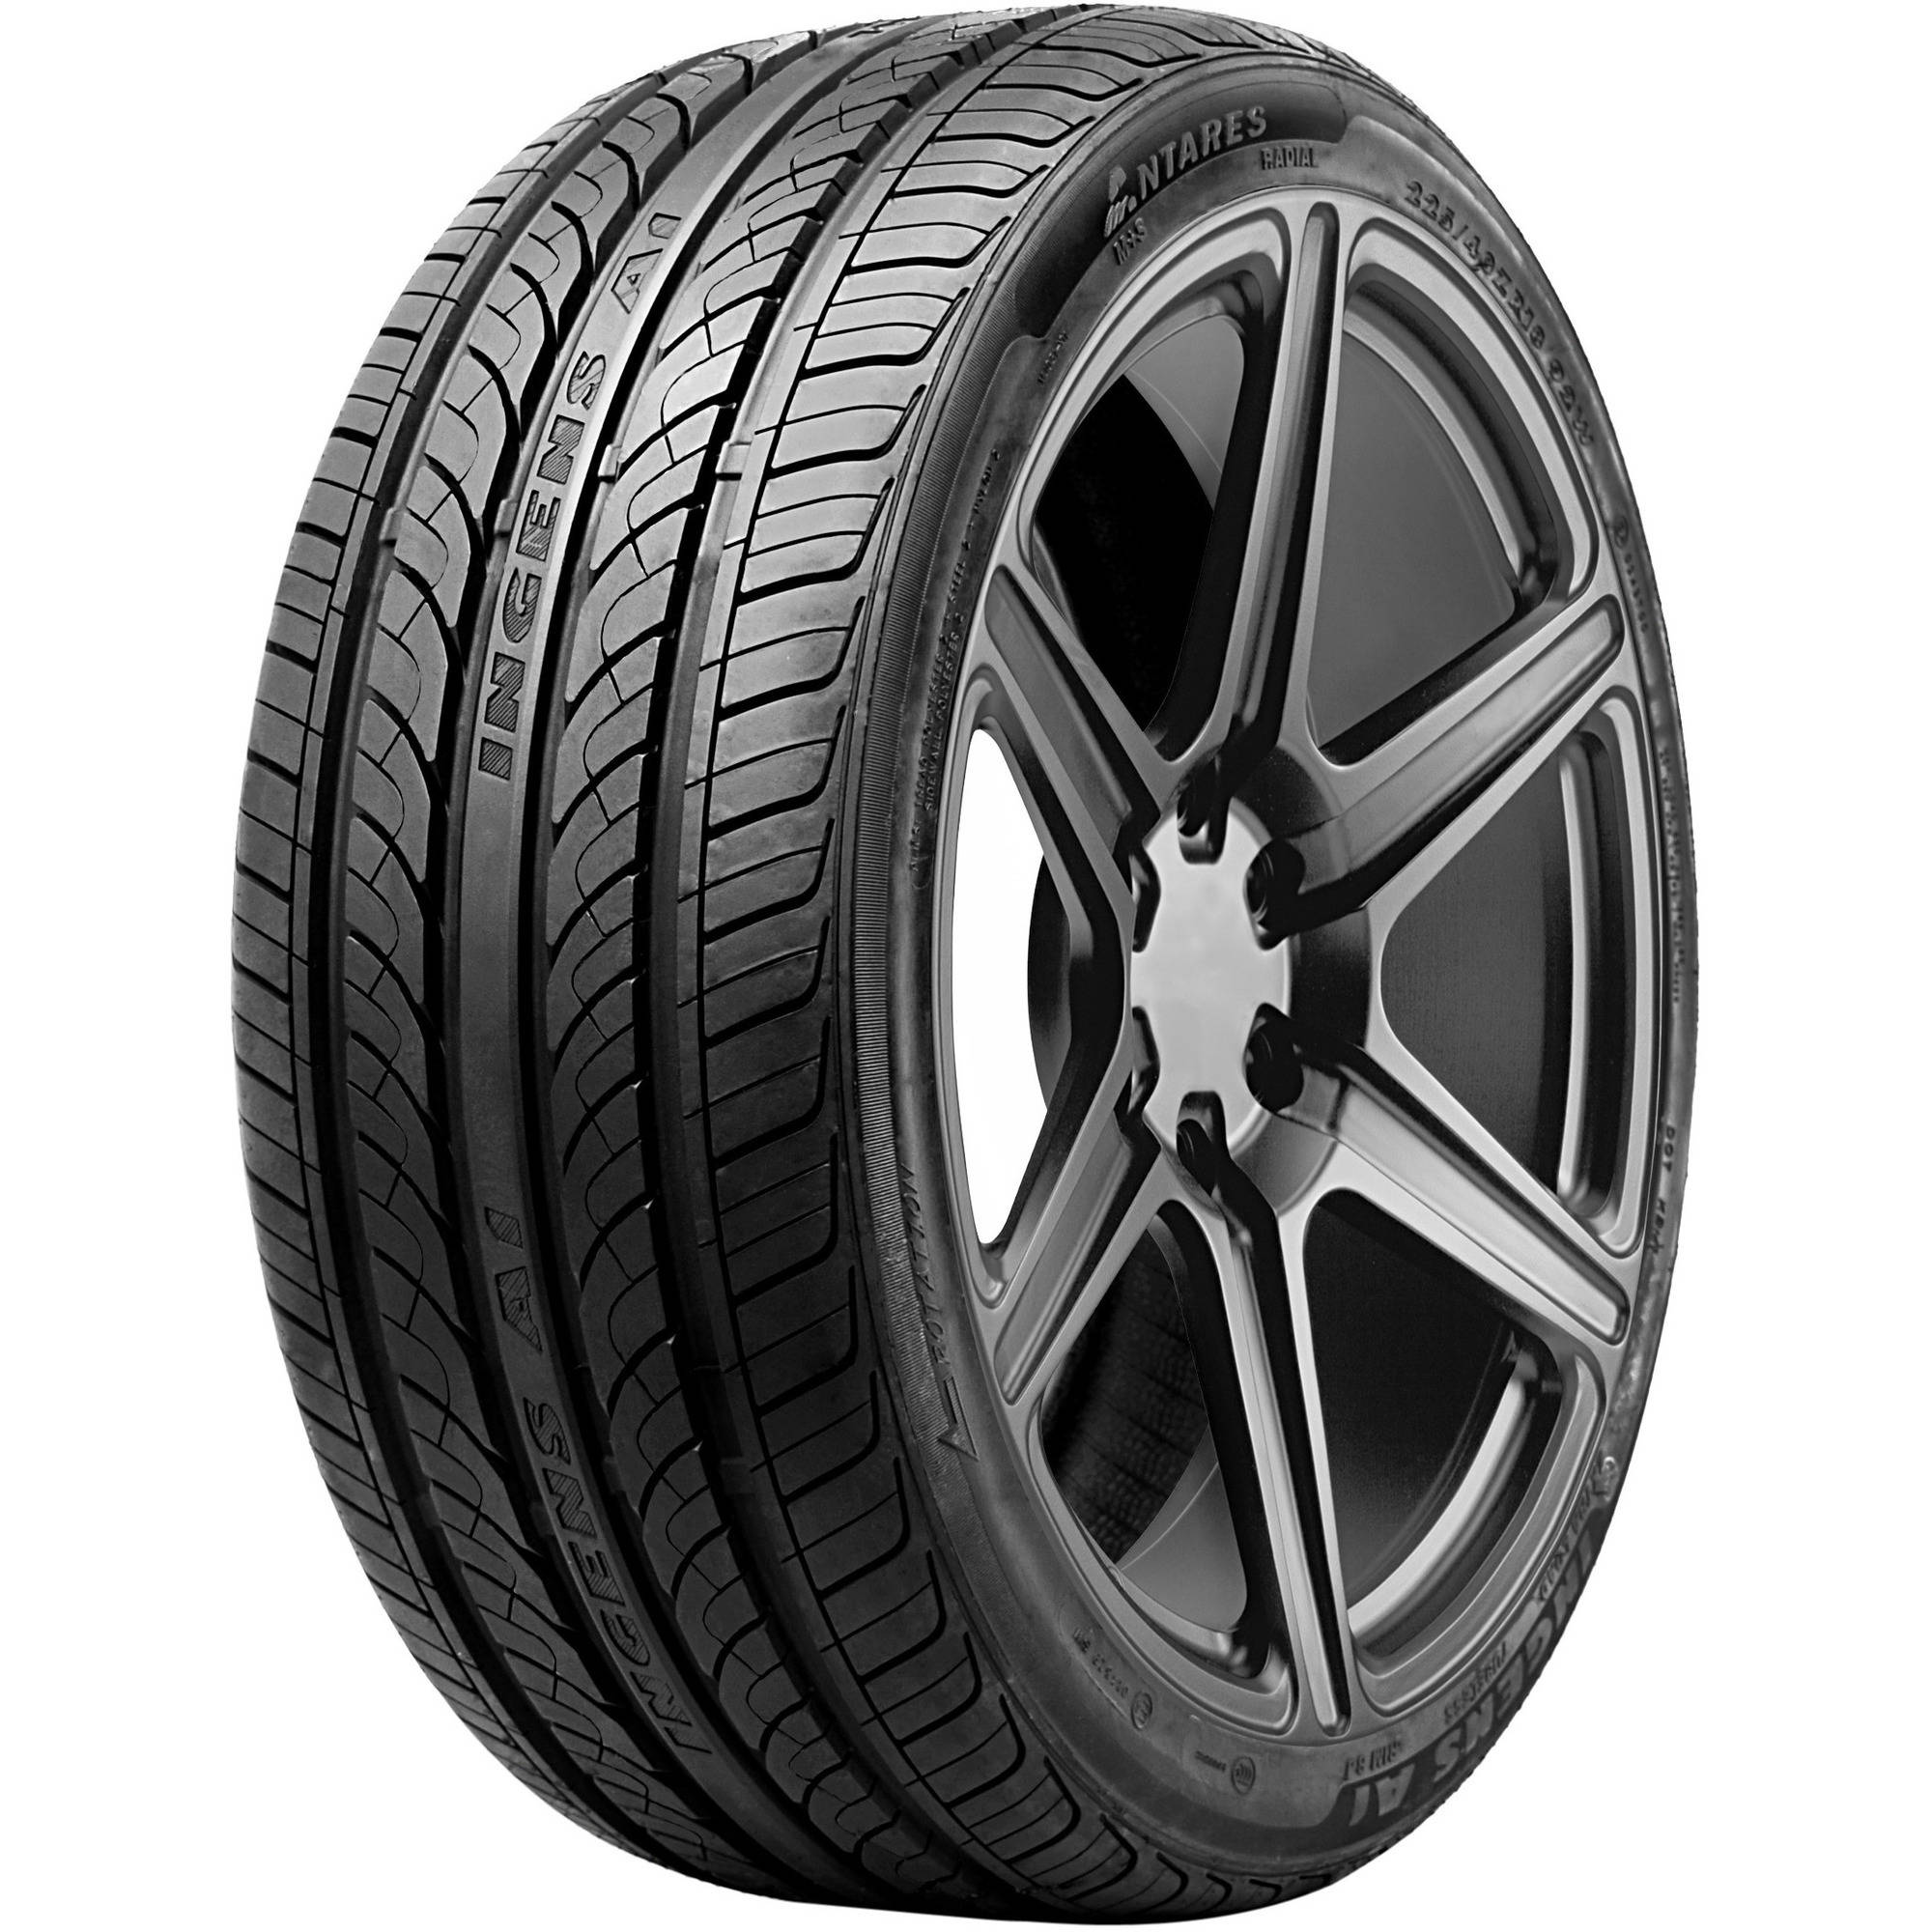 Antares Ingens A1 225 40R18 92W Tire by Antares